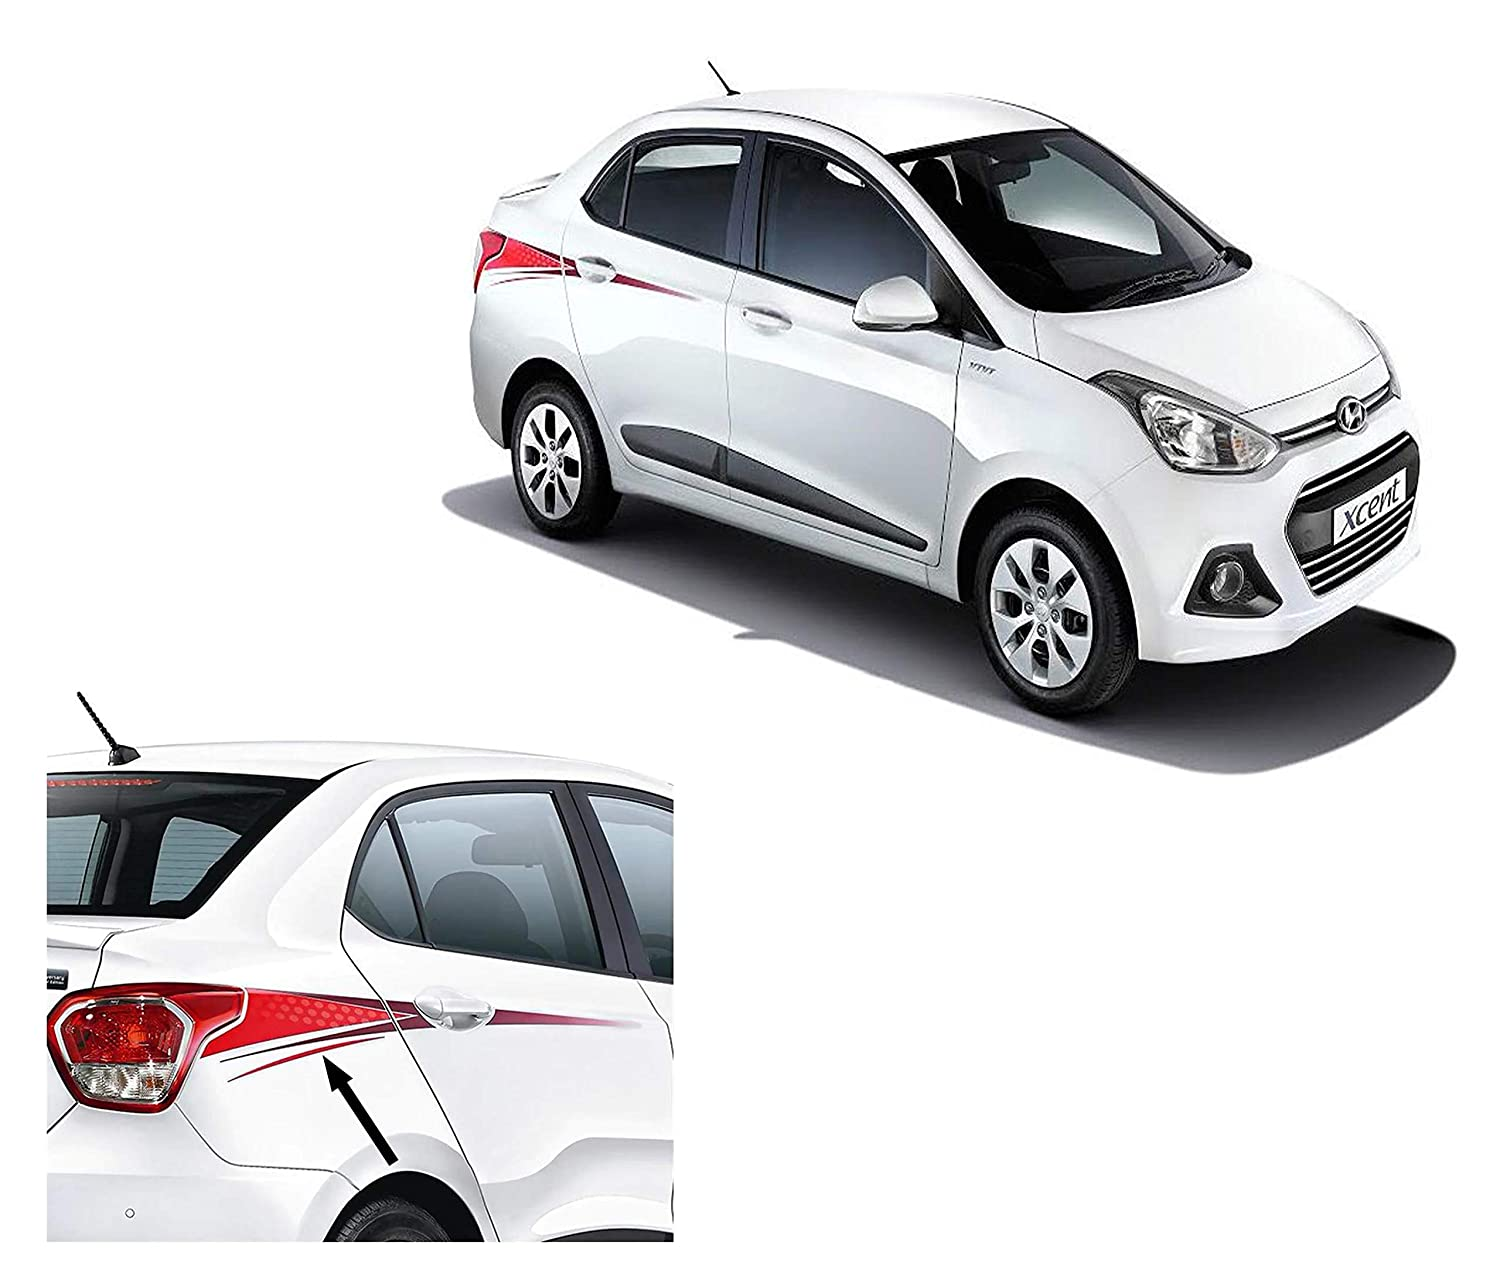 Autopop car sticker graphics for hyundai xcent same as in special edition model amazon in car motorbike